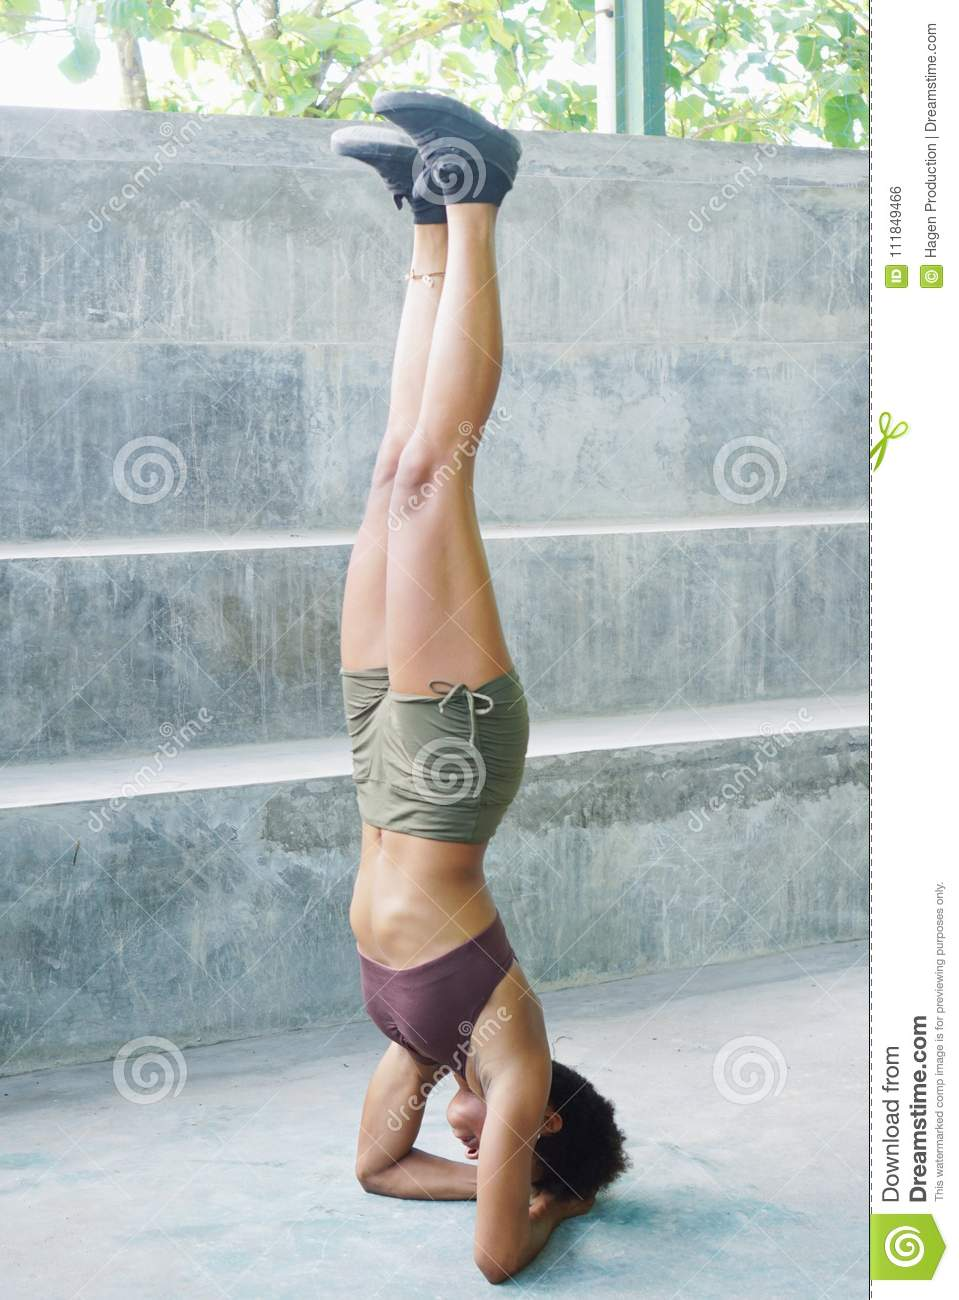 Pacific islander athlete girl with afro performing exercising routines headstand